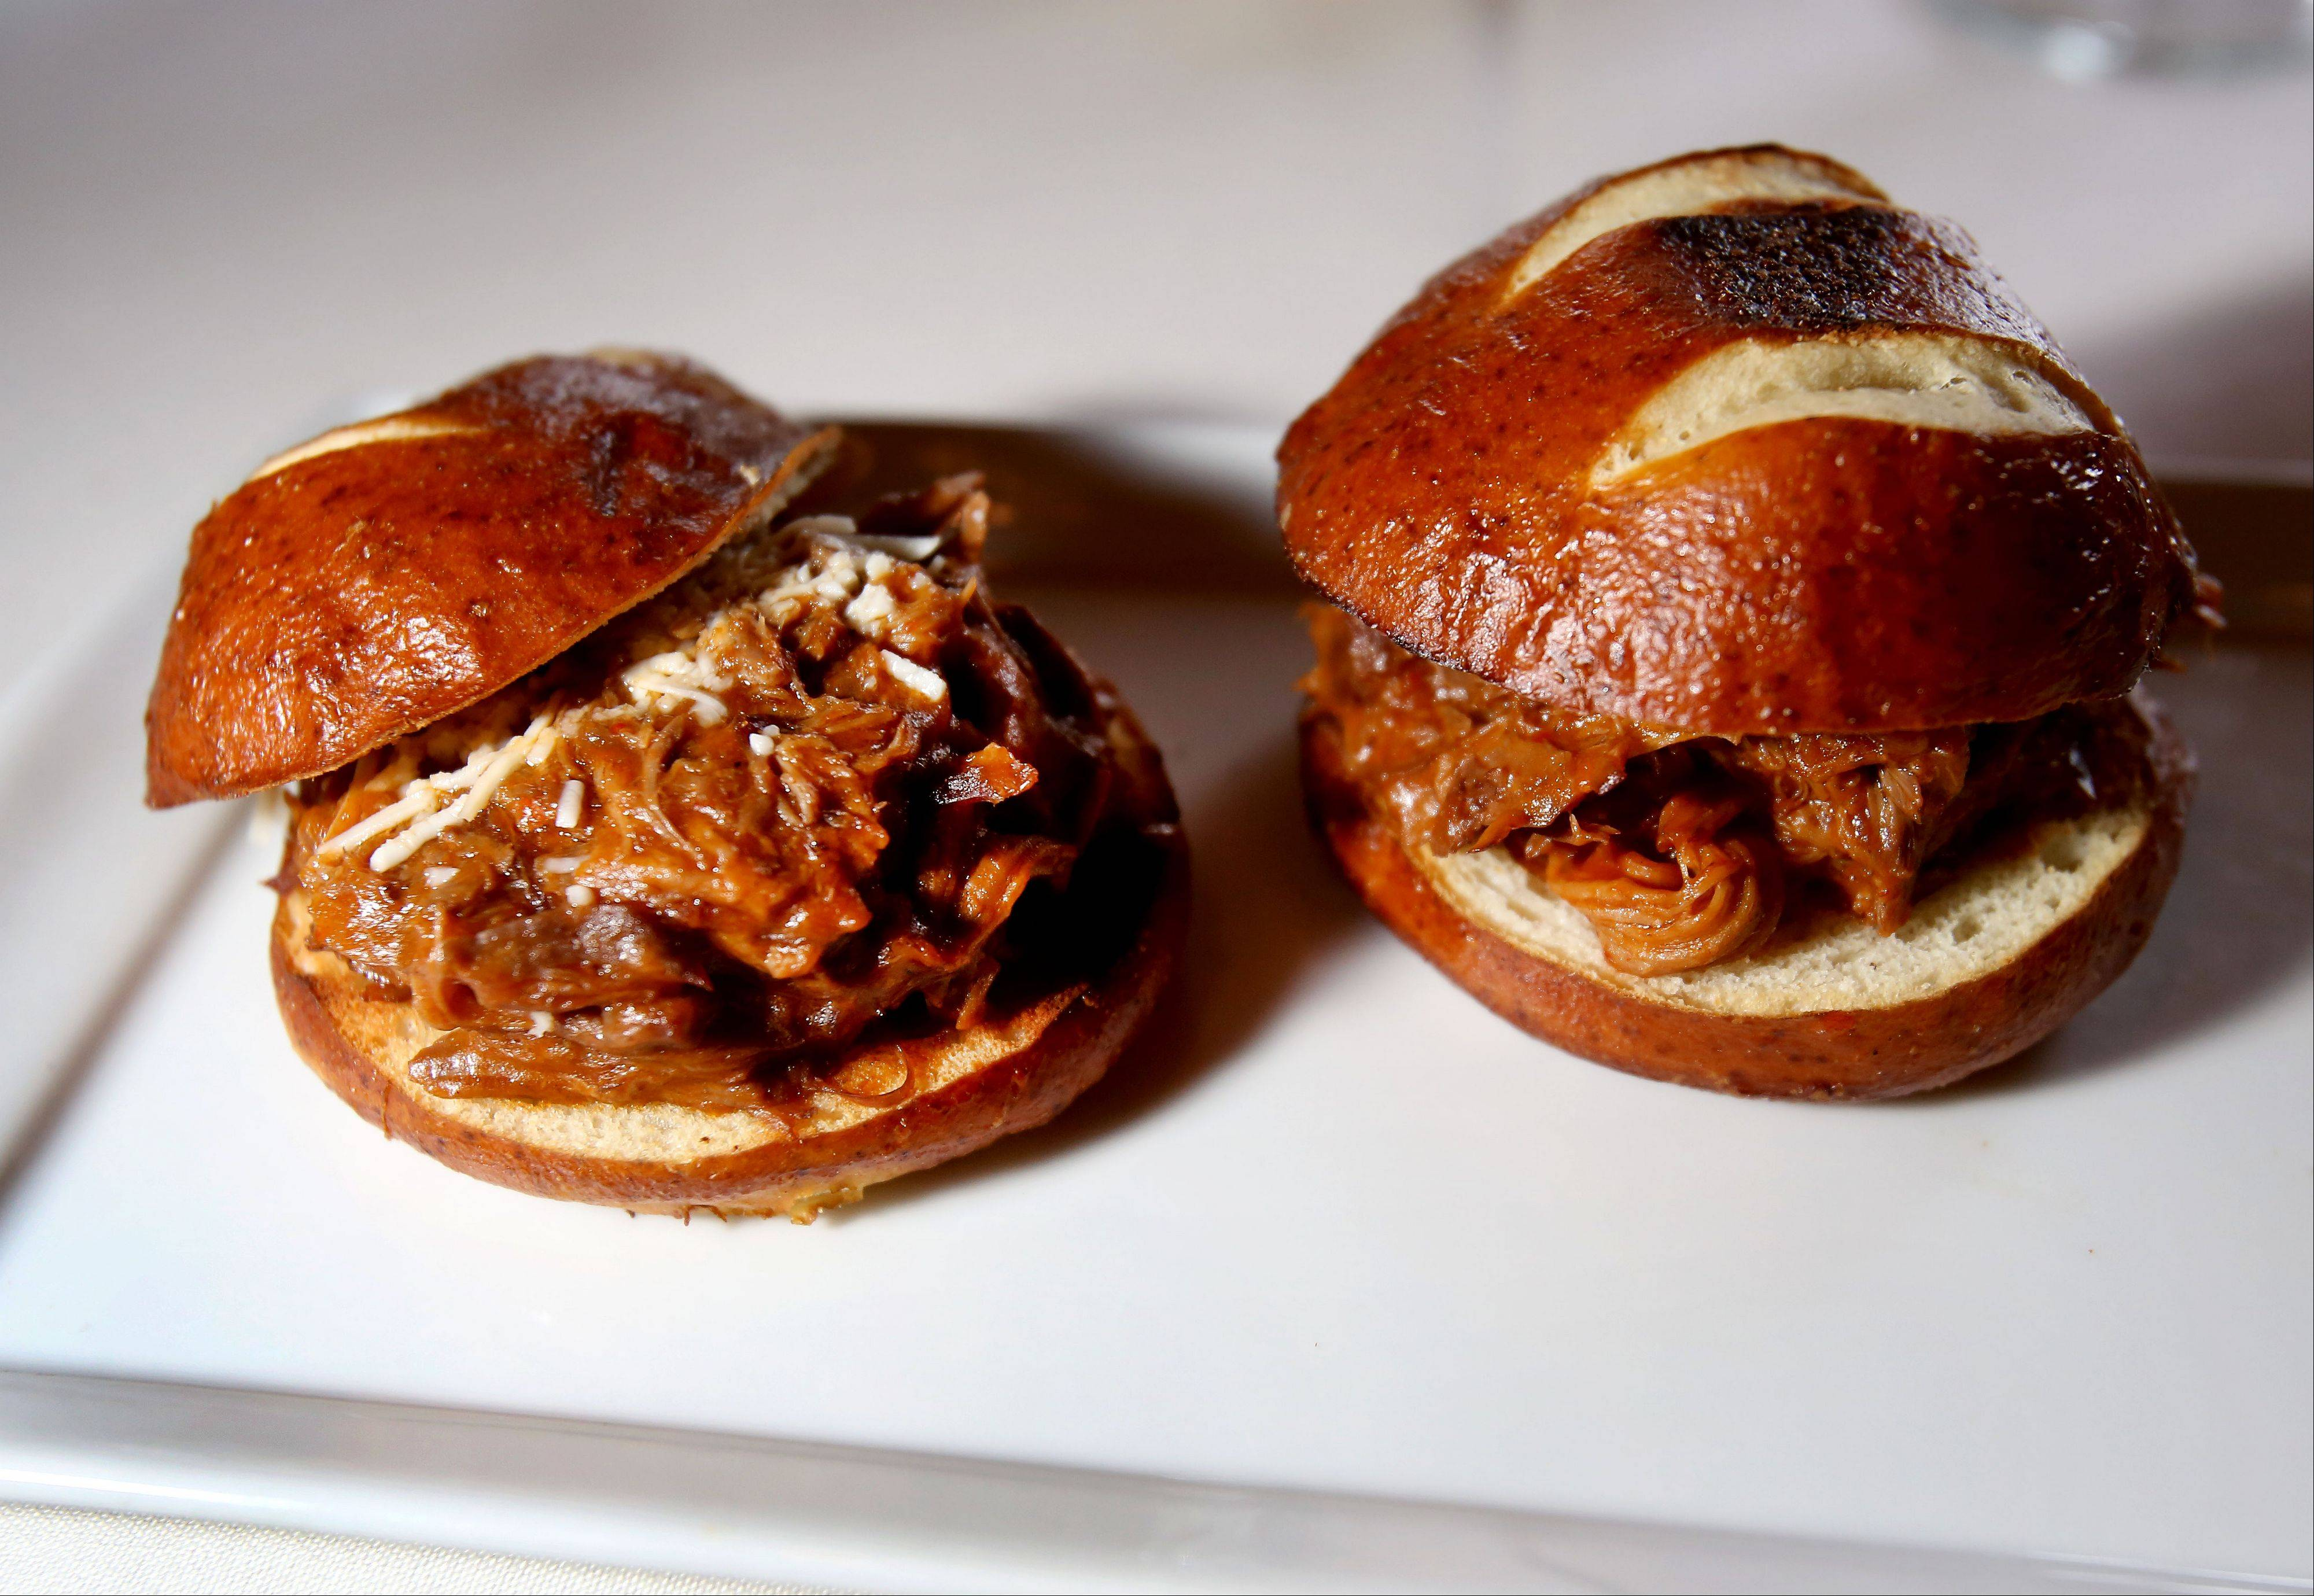 Shredded lamb shank sliders are part of the $44 dinner menu at Basil's Greek Dining in Aurora.